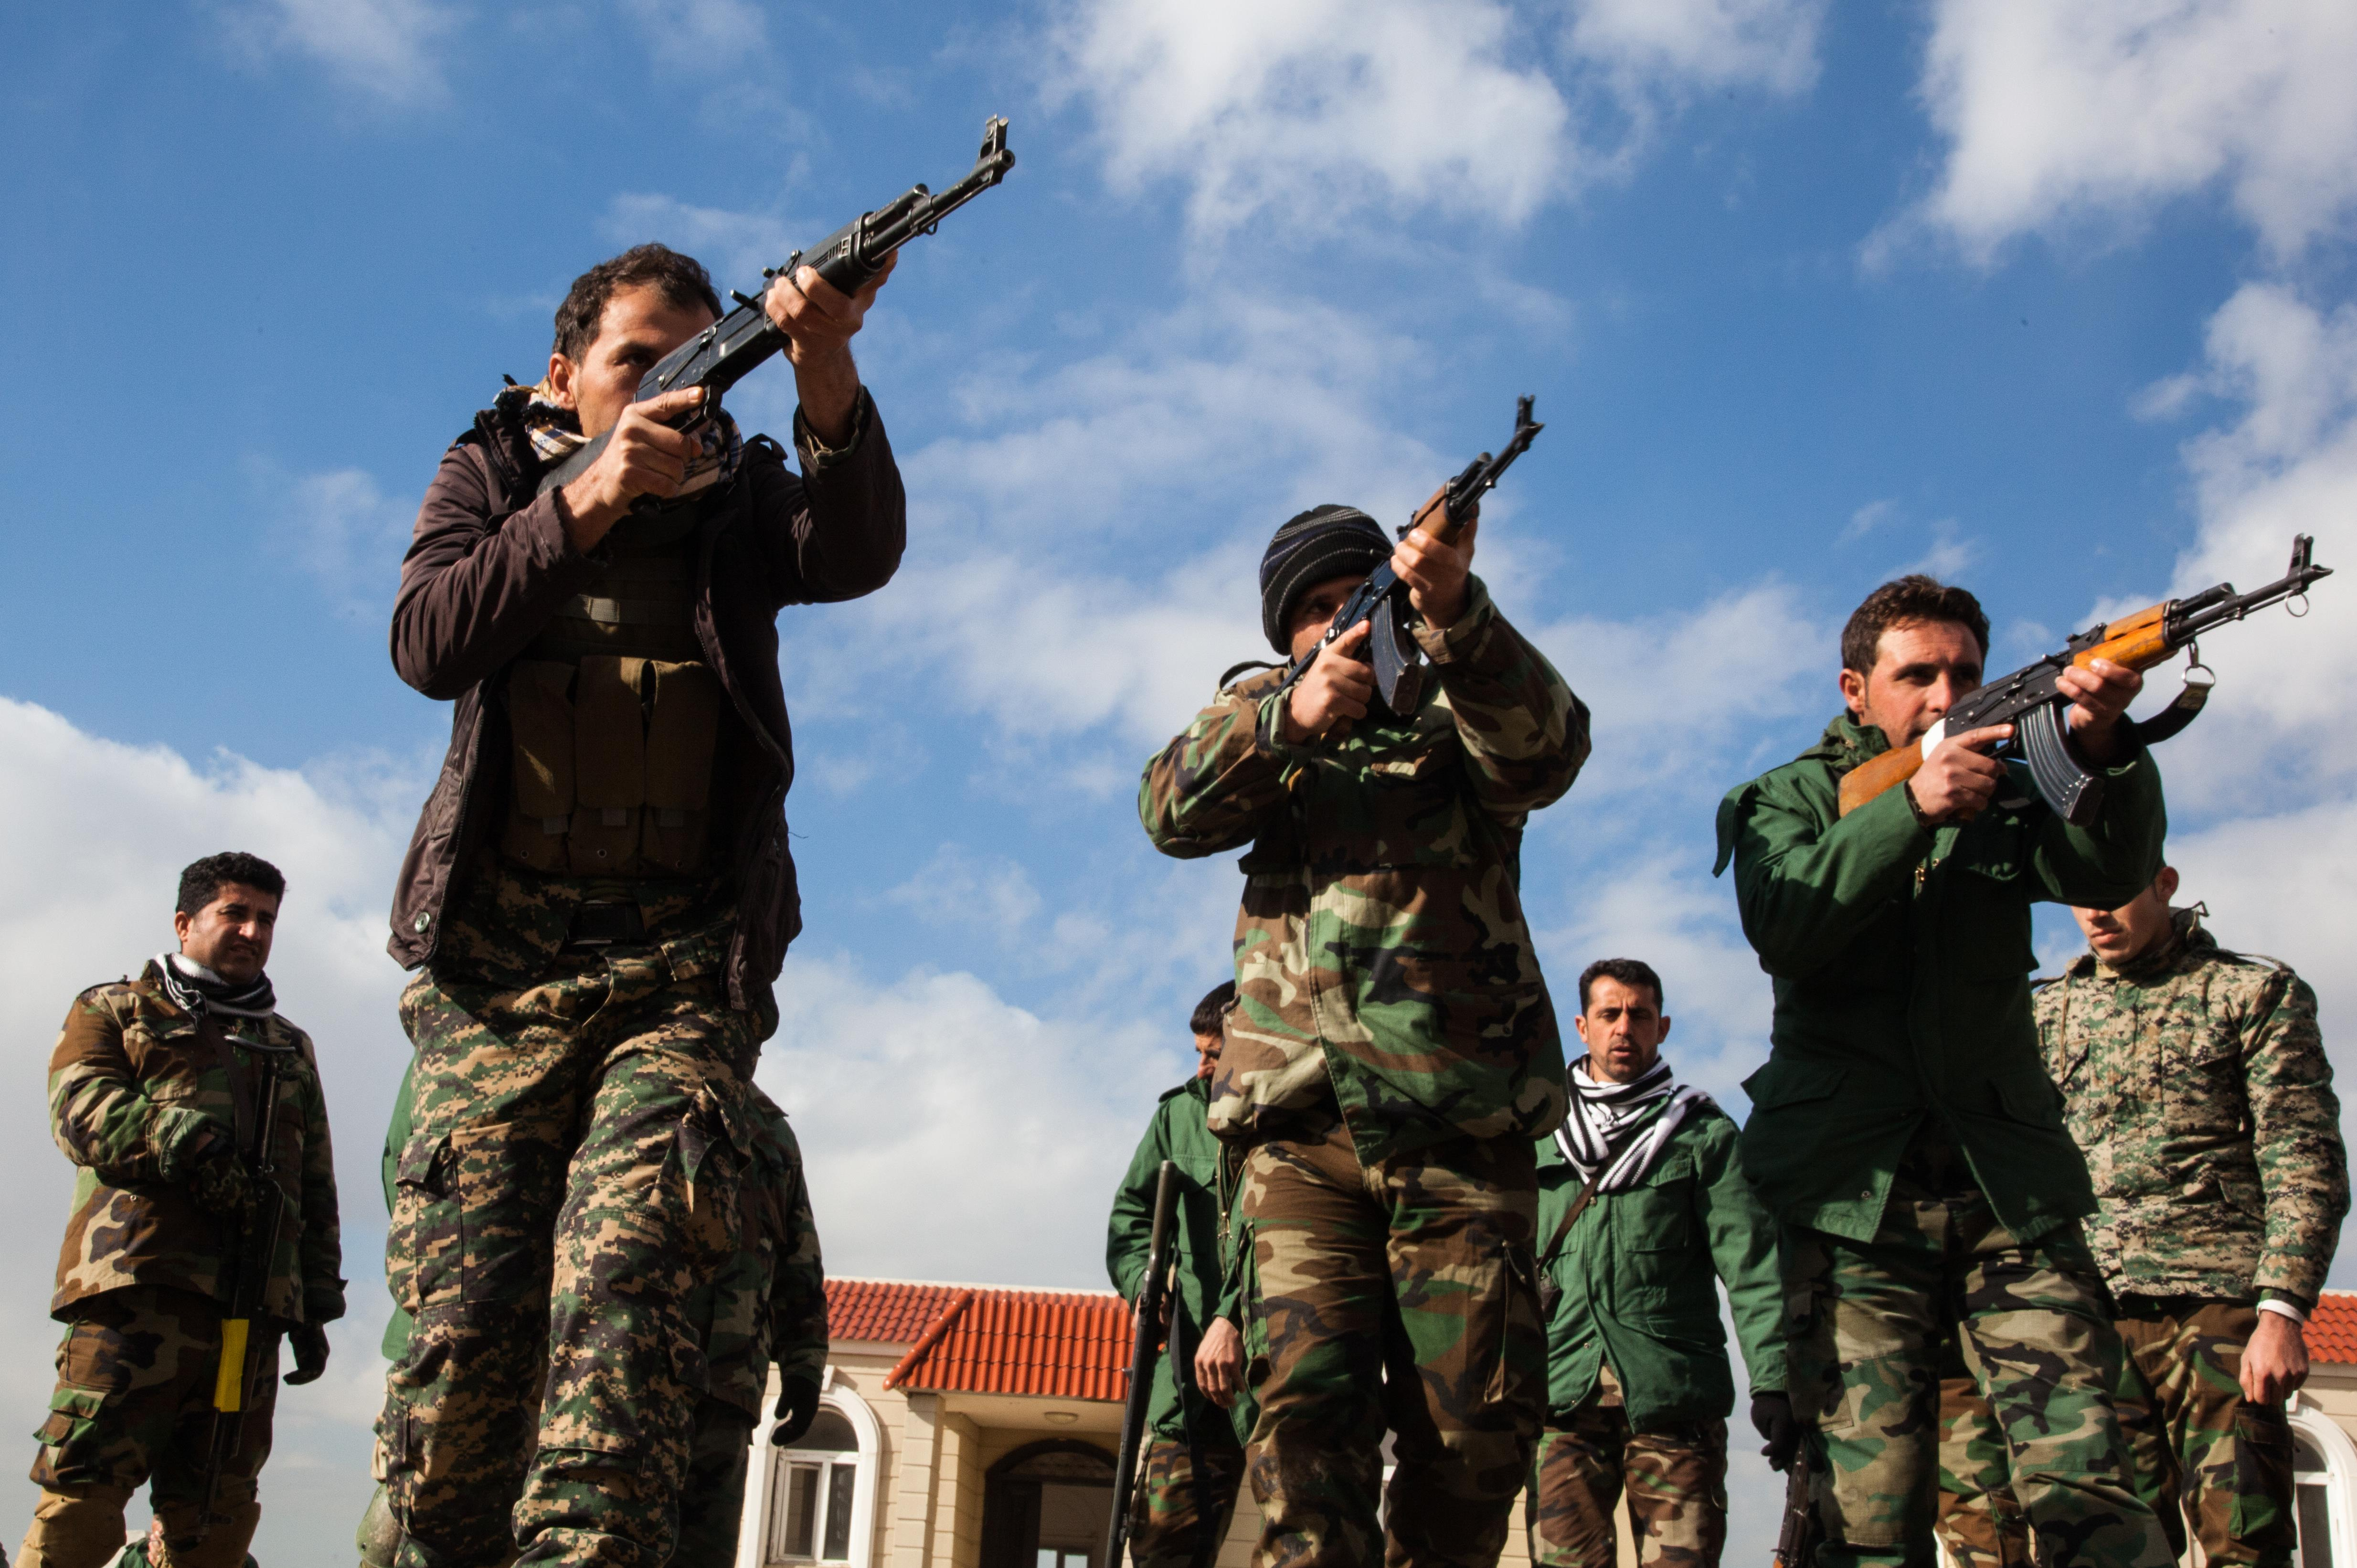 Peshmerga soldiers practice tactical movements and clearing a buildings